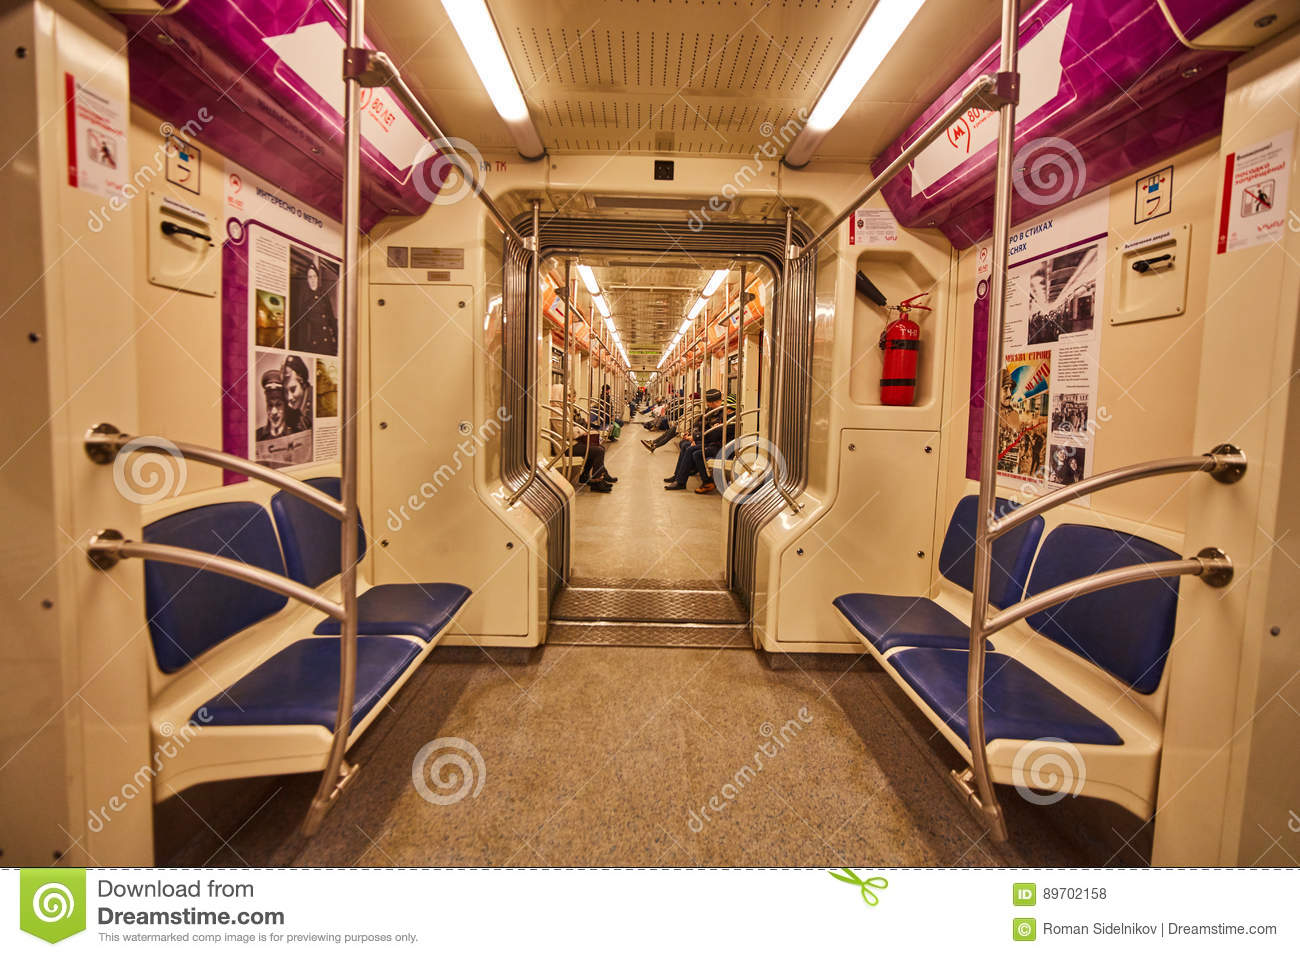 Inside metro wagon in Moscow